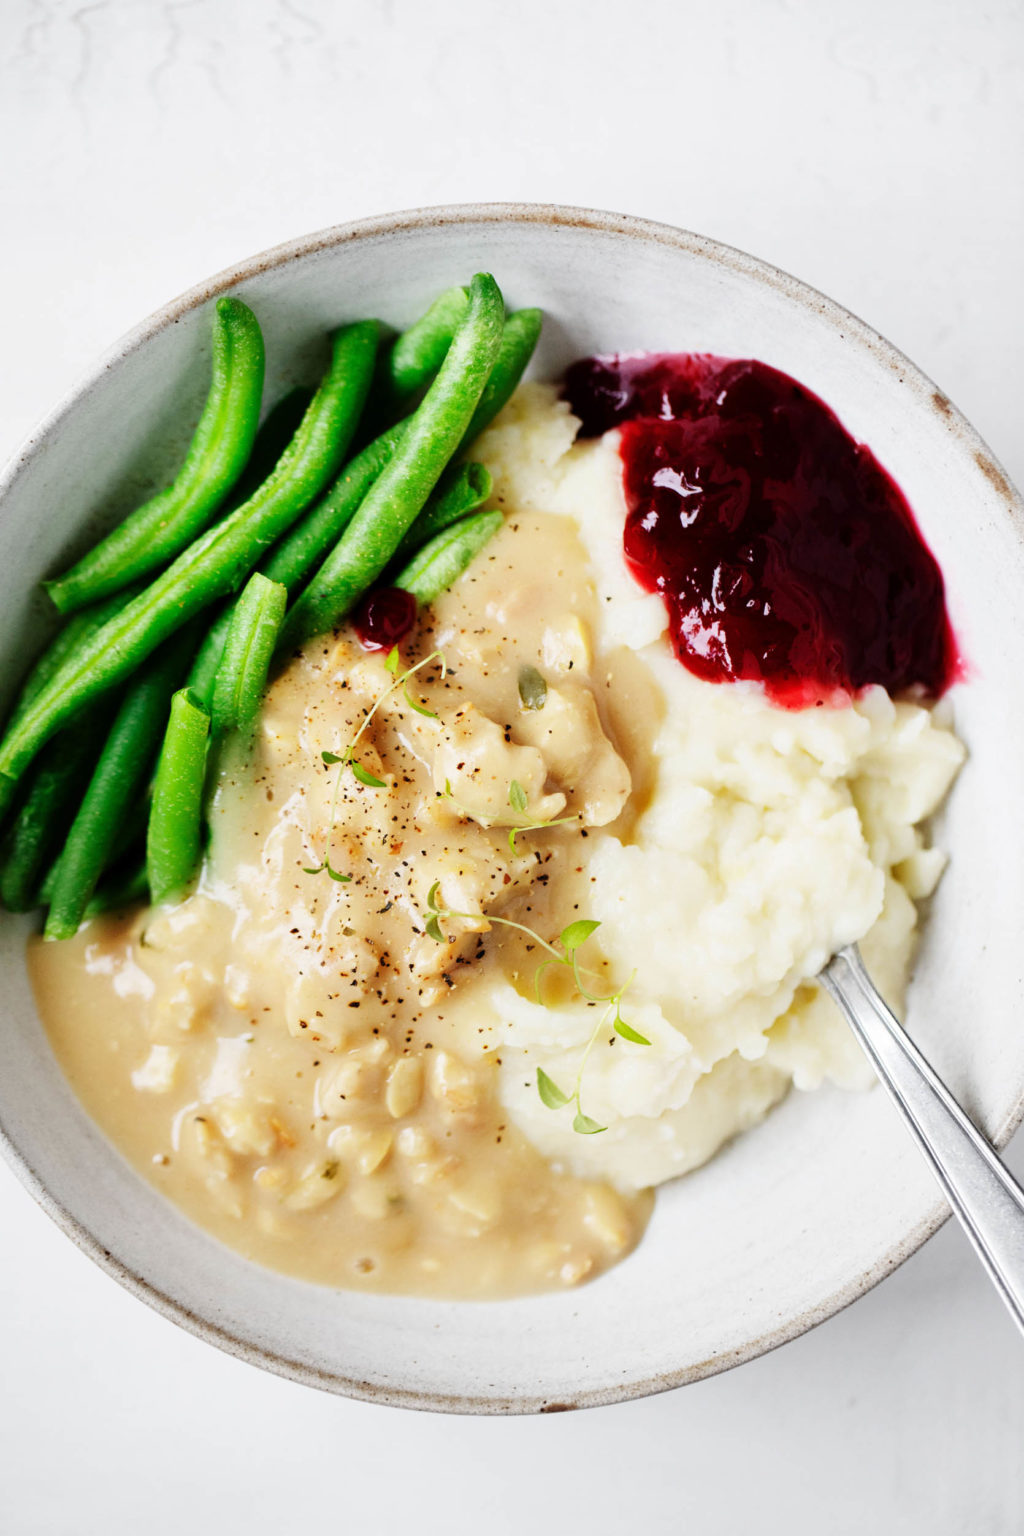 A bowl of vegan holiday food, including mashed potatoes, tempeh and gravy, green beans, and a little scoop of cranberry sauce.